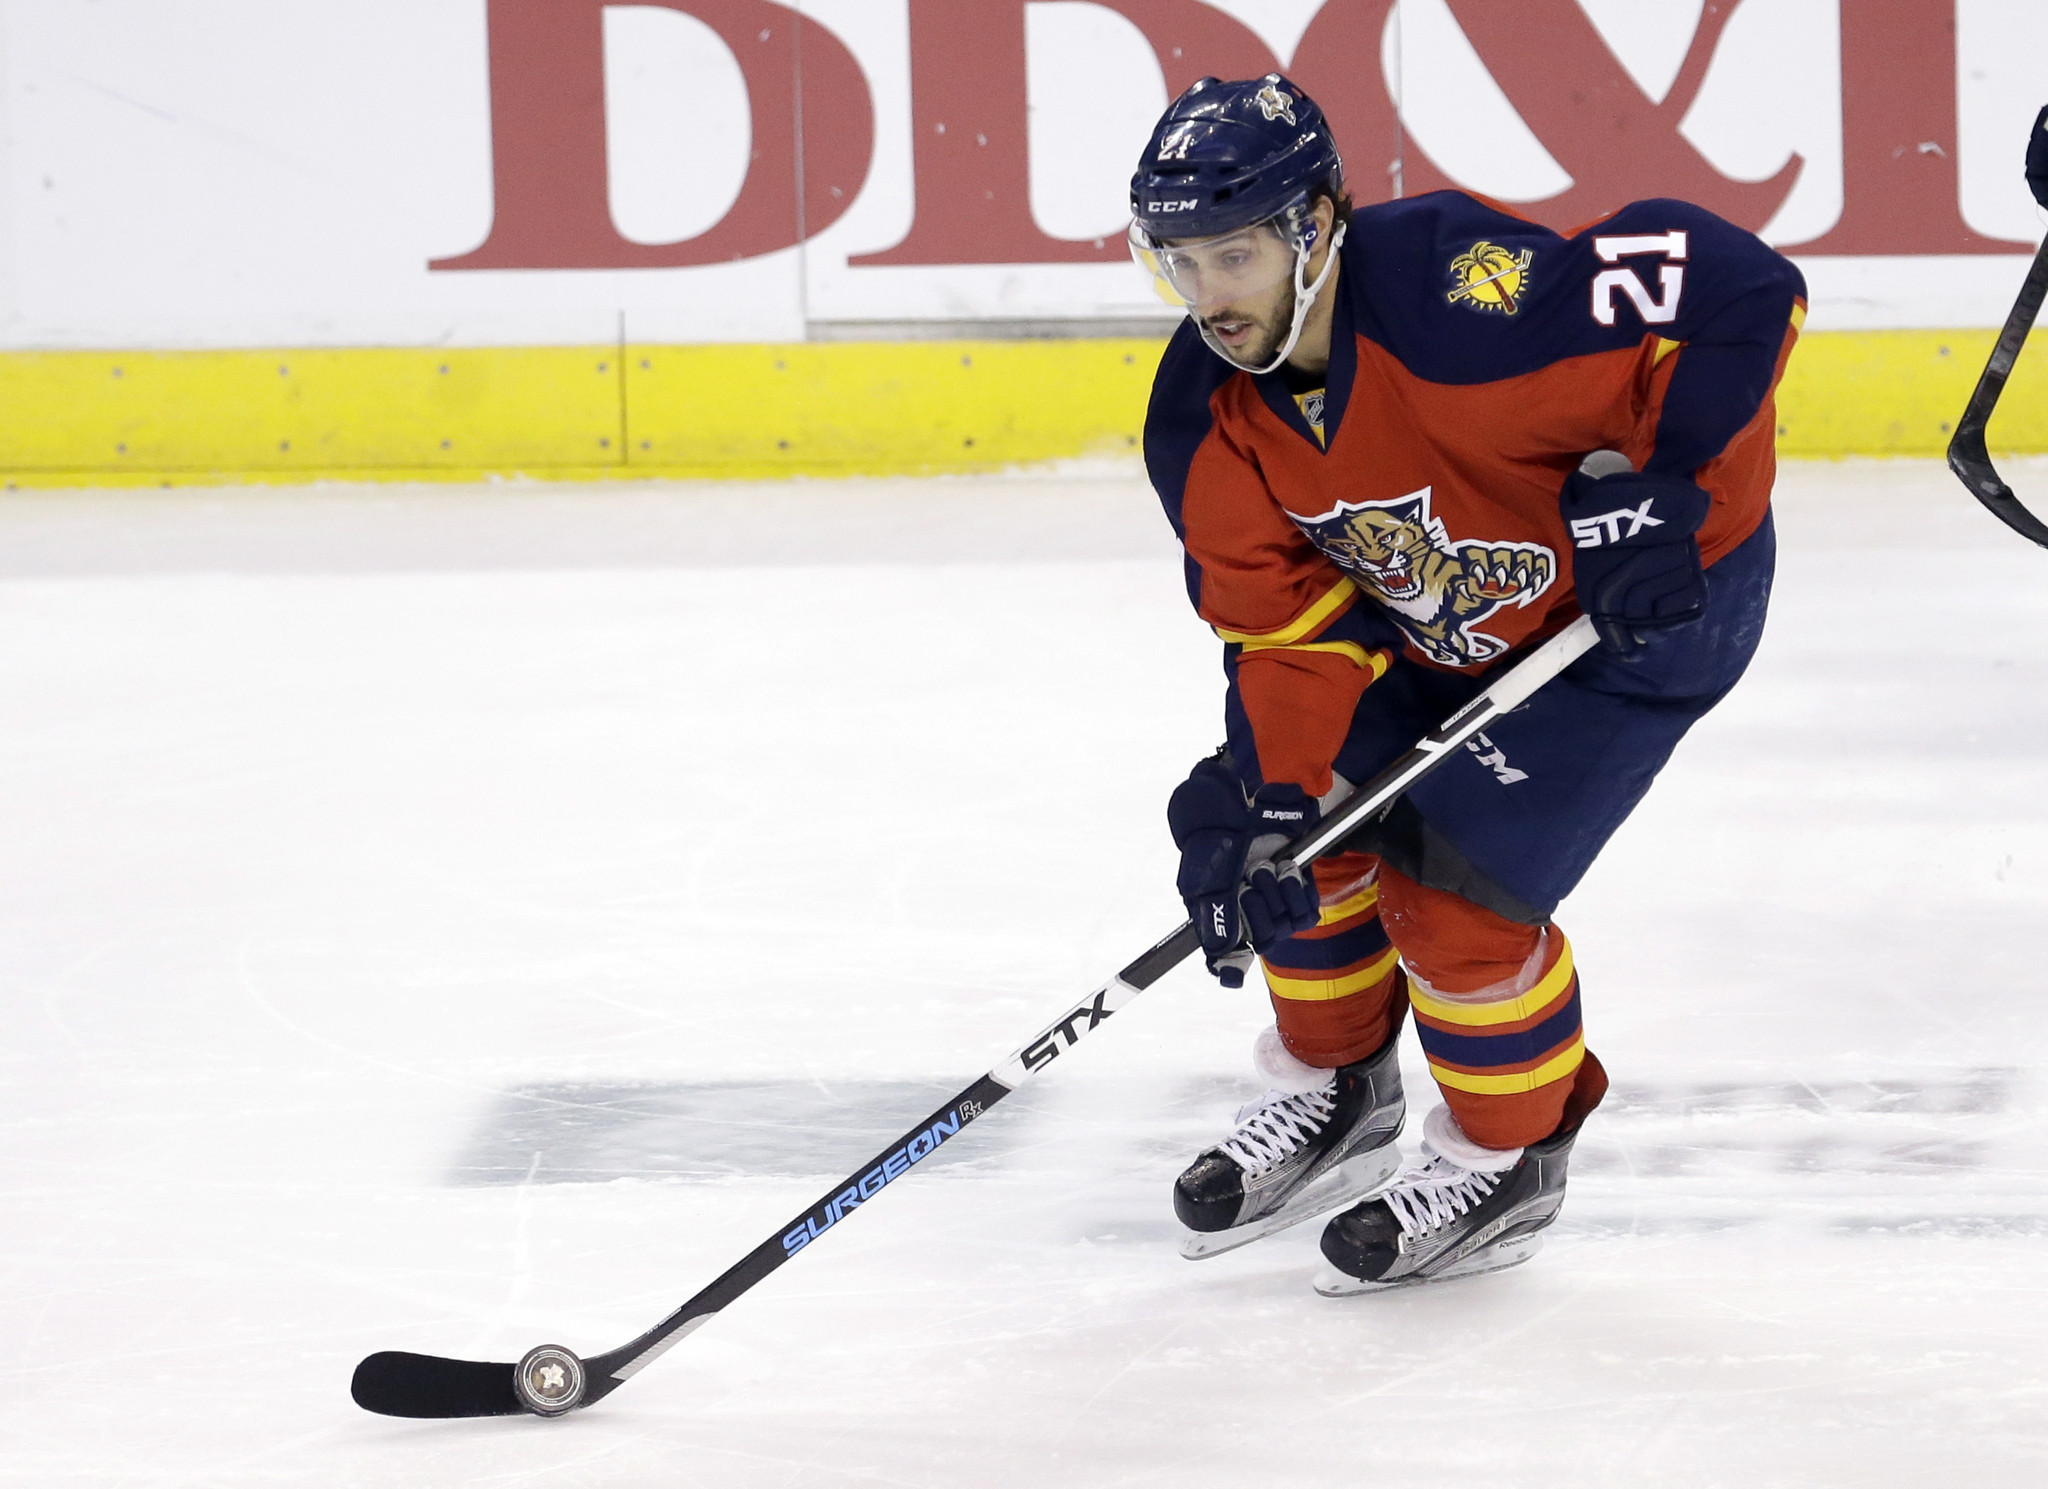 Sfl-panthers-forward-vincent-trocheck-invited-as-alternate-to-world-cup-team-according-to-source-20160815